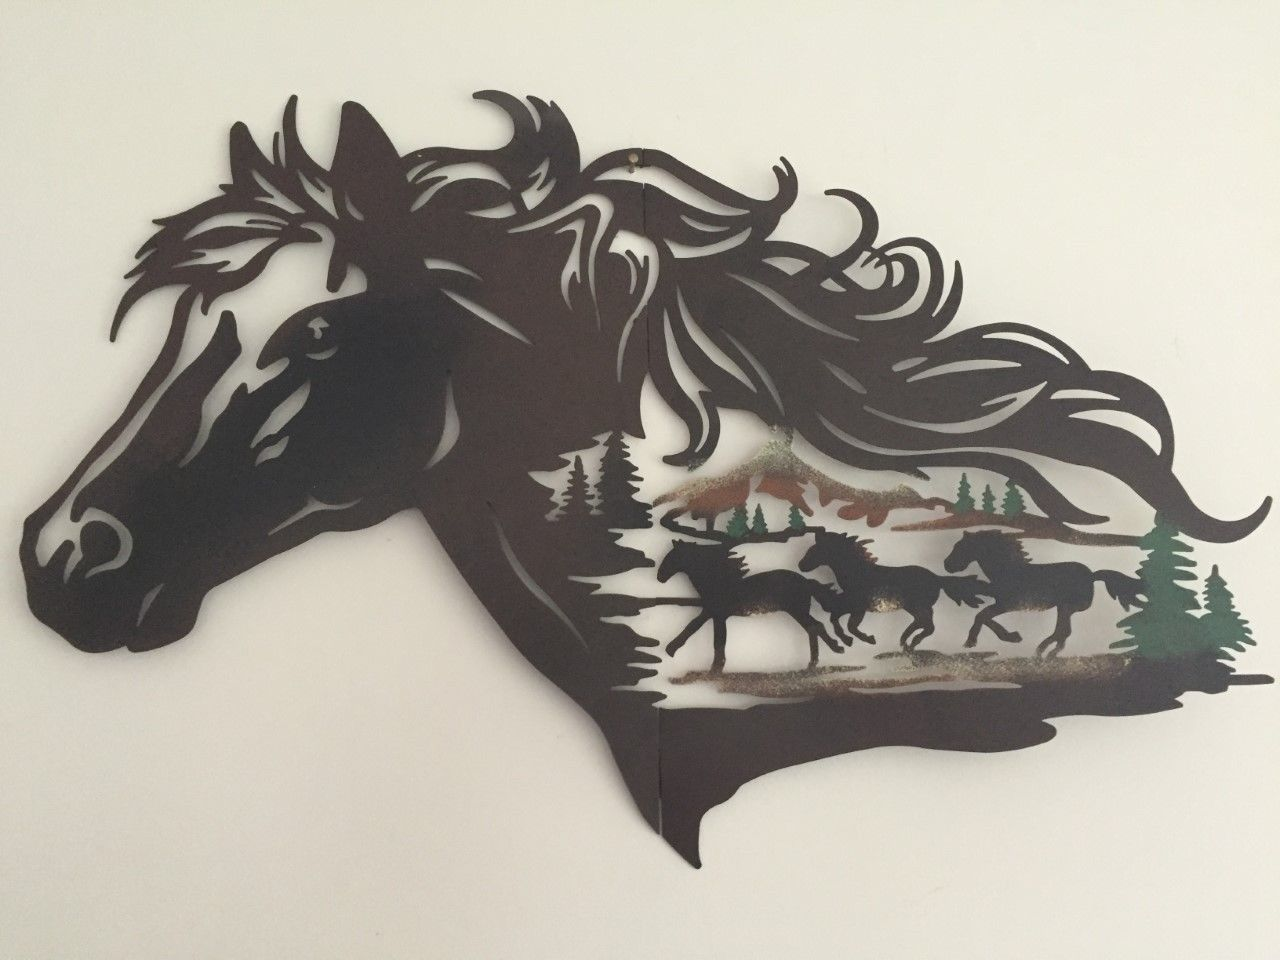 Rustic western horse metal wall art galloping horse cowboy evergreen